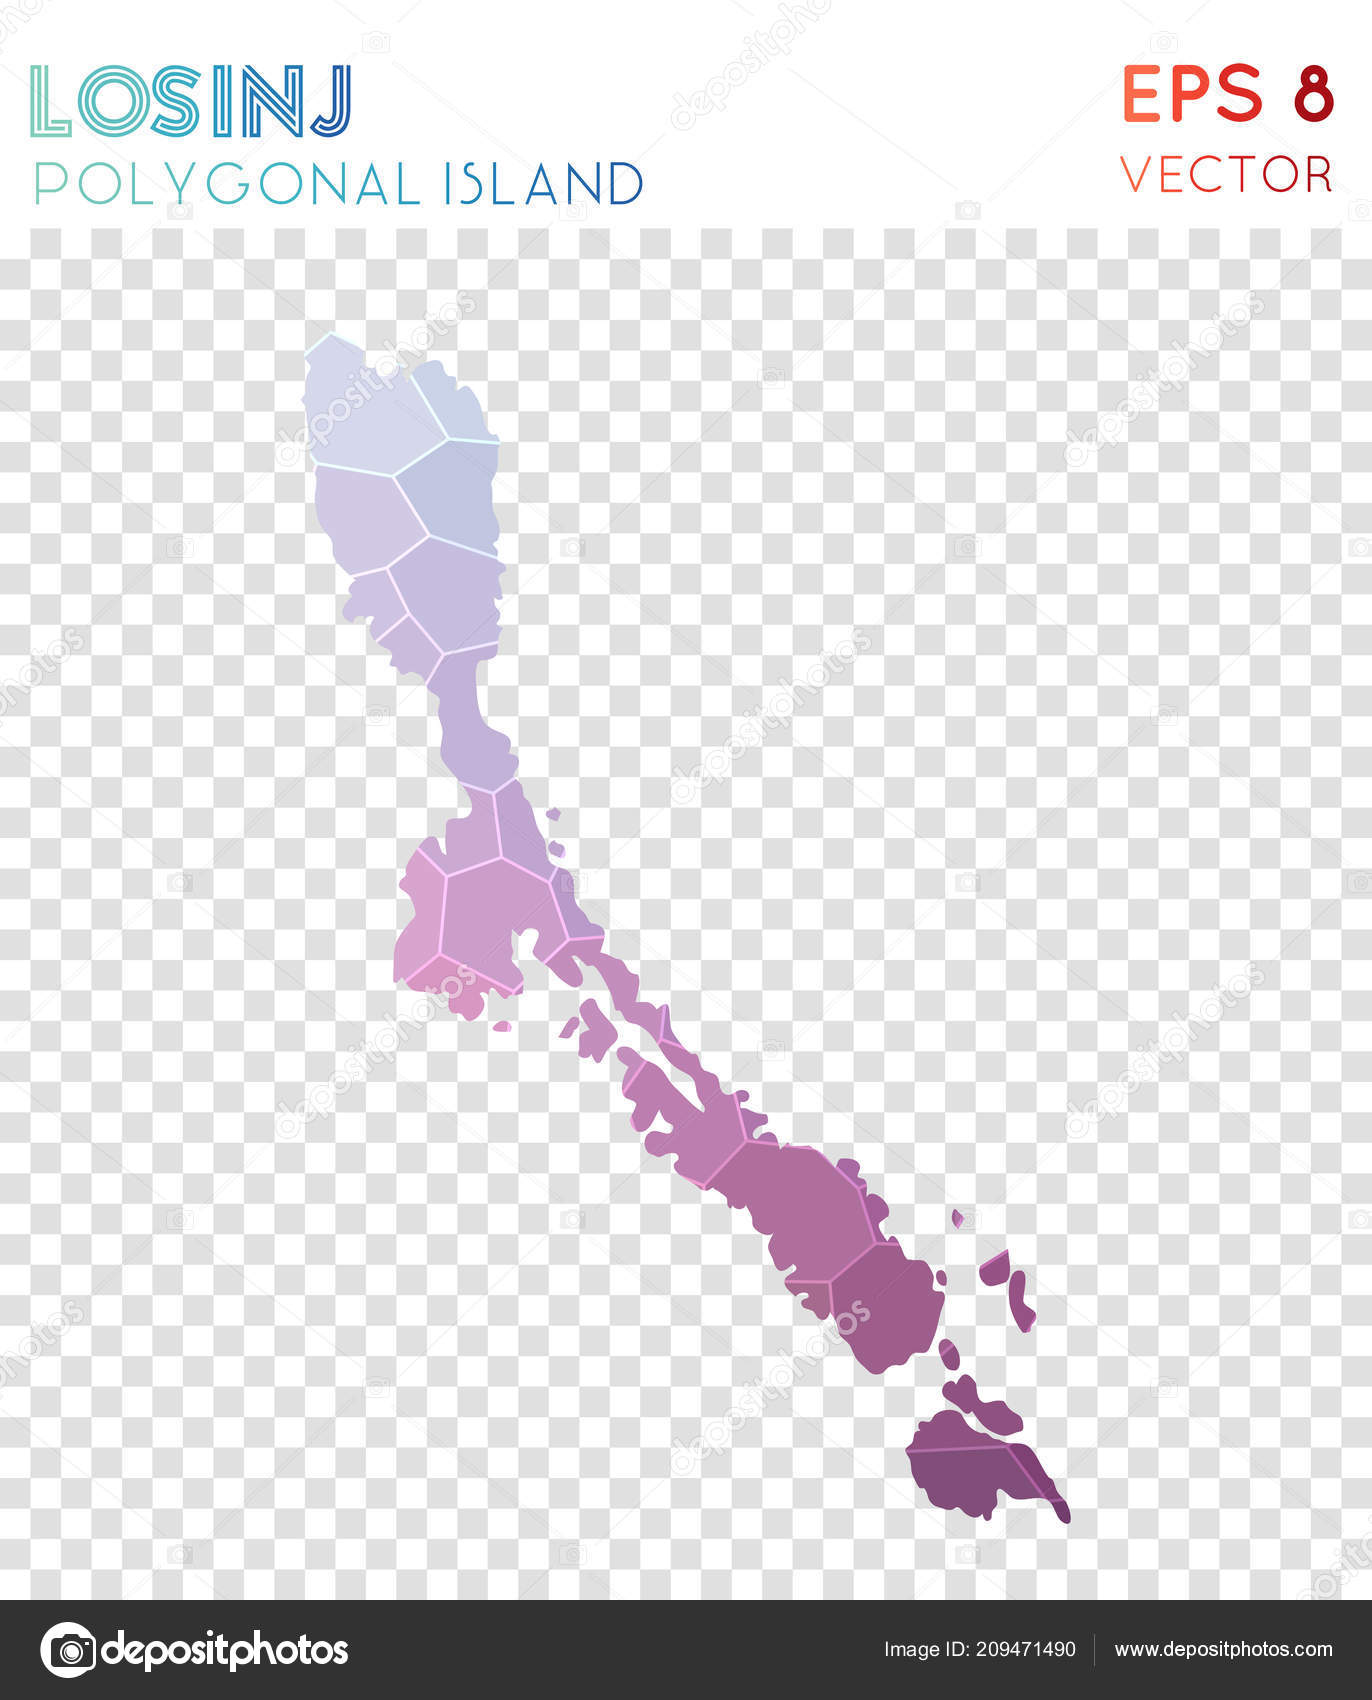 Wunderbar Losinj Polygonal Map Mosaic Style Island Captivating Low Poly Style Modern  Design Losinj U2014 Vetores De